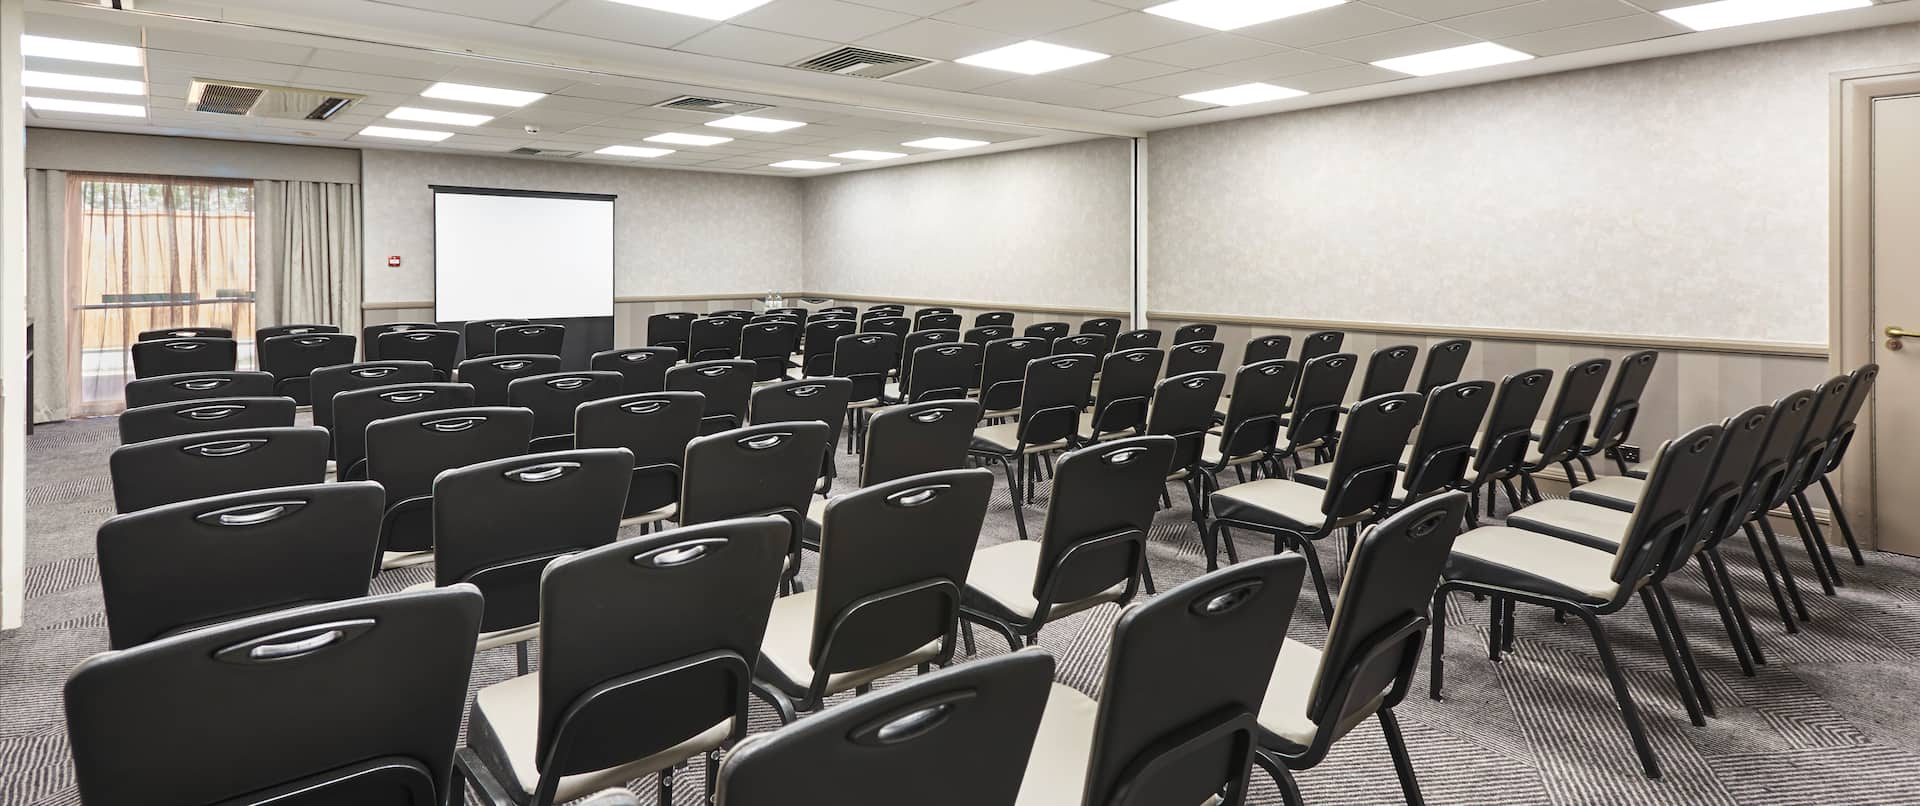 Enbourne Suite Arranged Theater Style With Rows of Chairs Facing Projector Screen and Window With Sheer Drapes